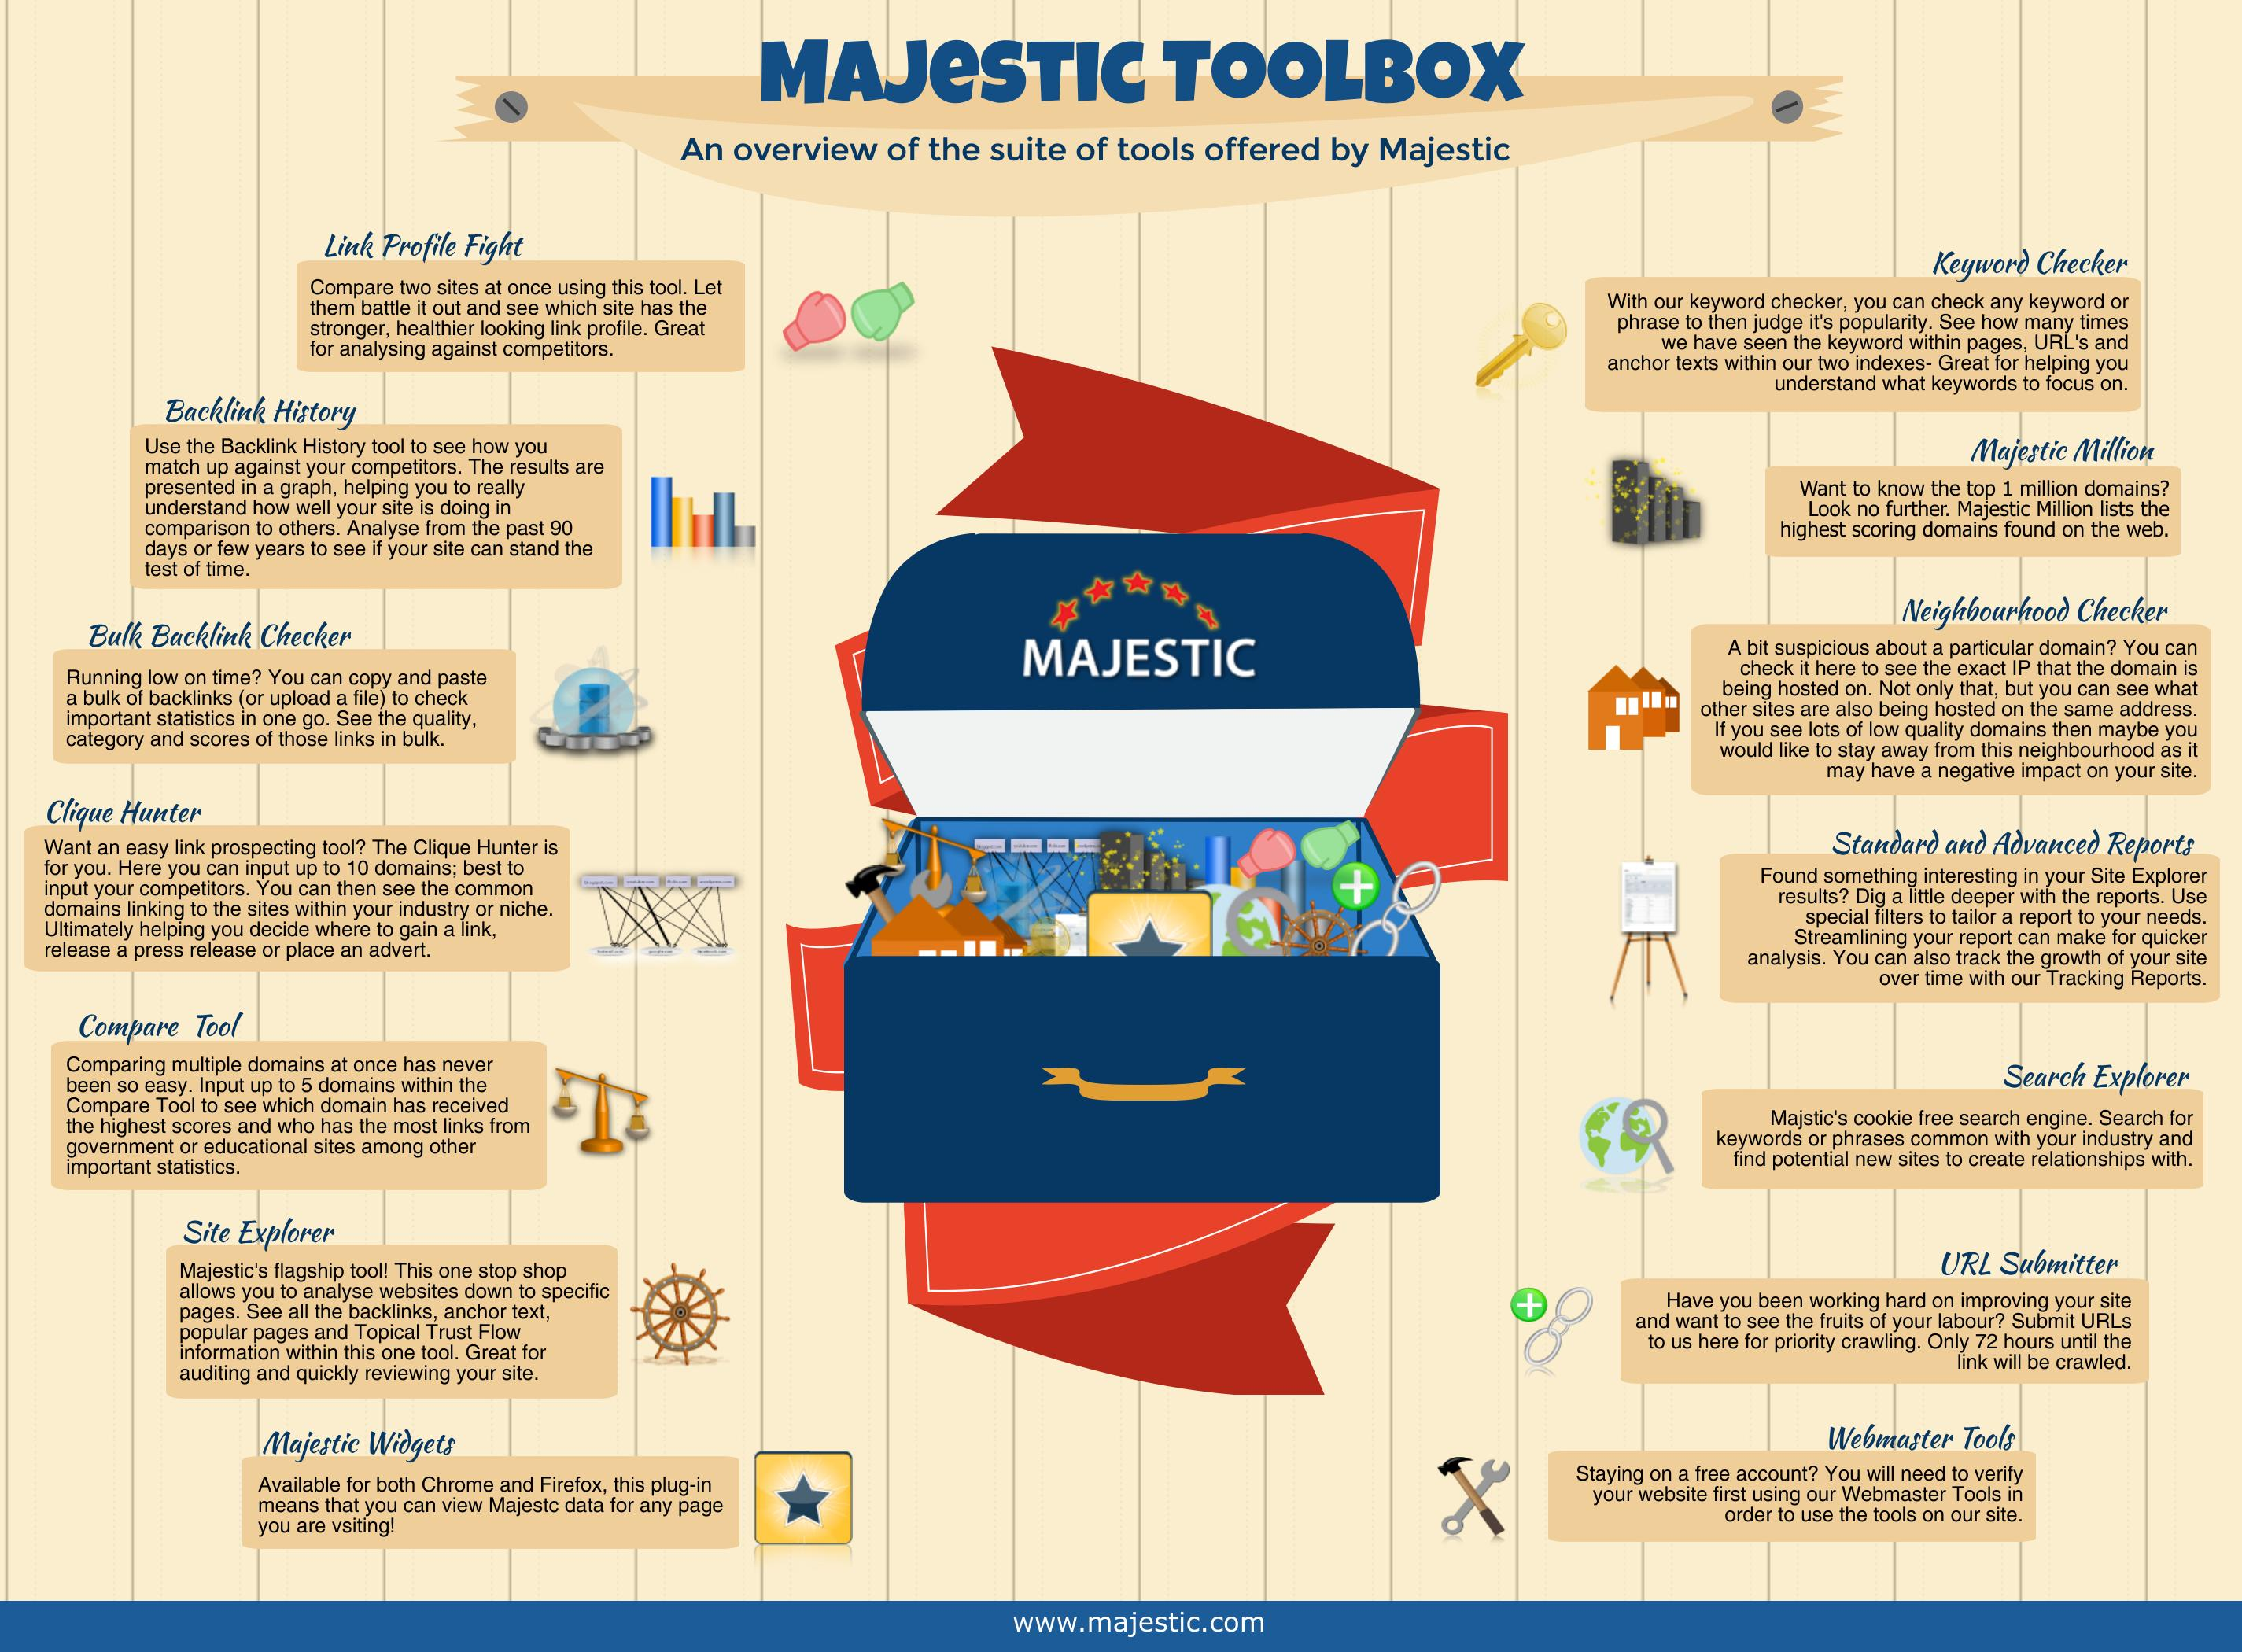 Majestic Toolbox